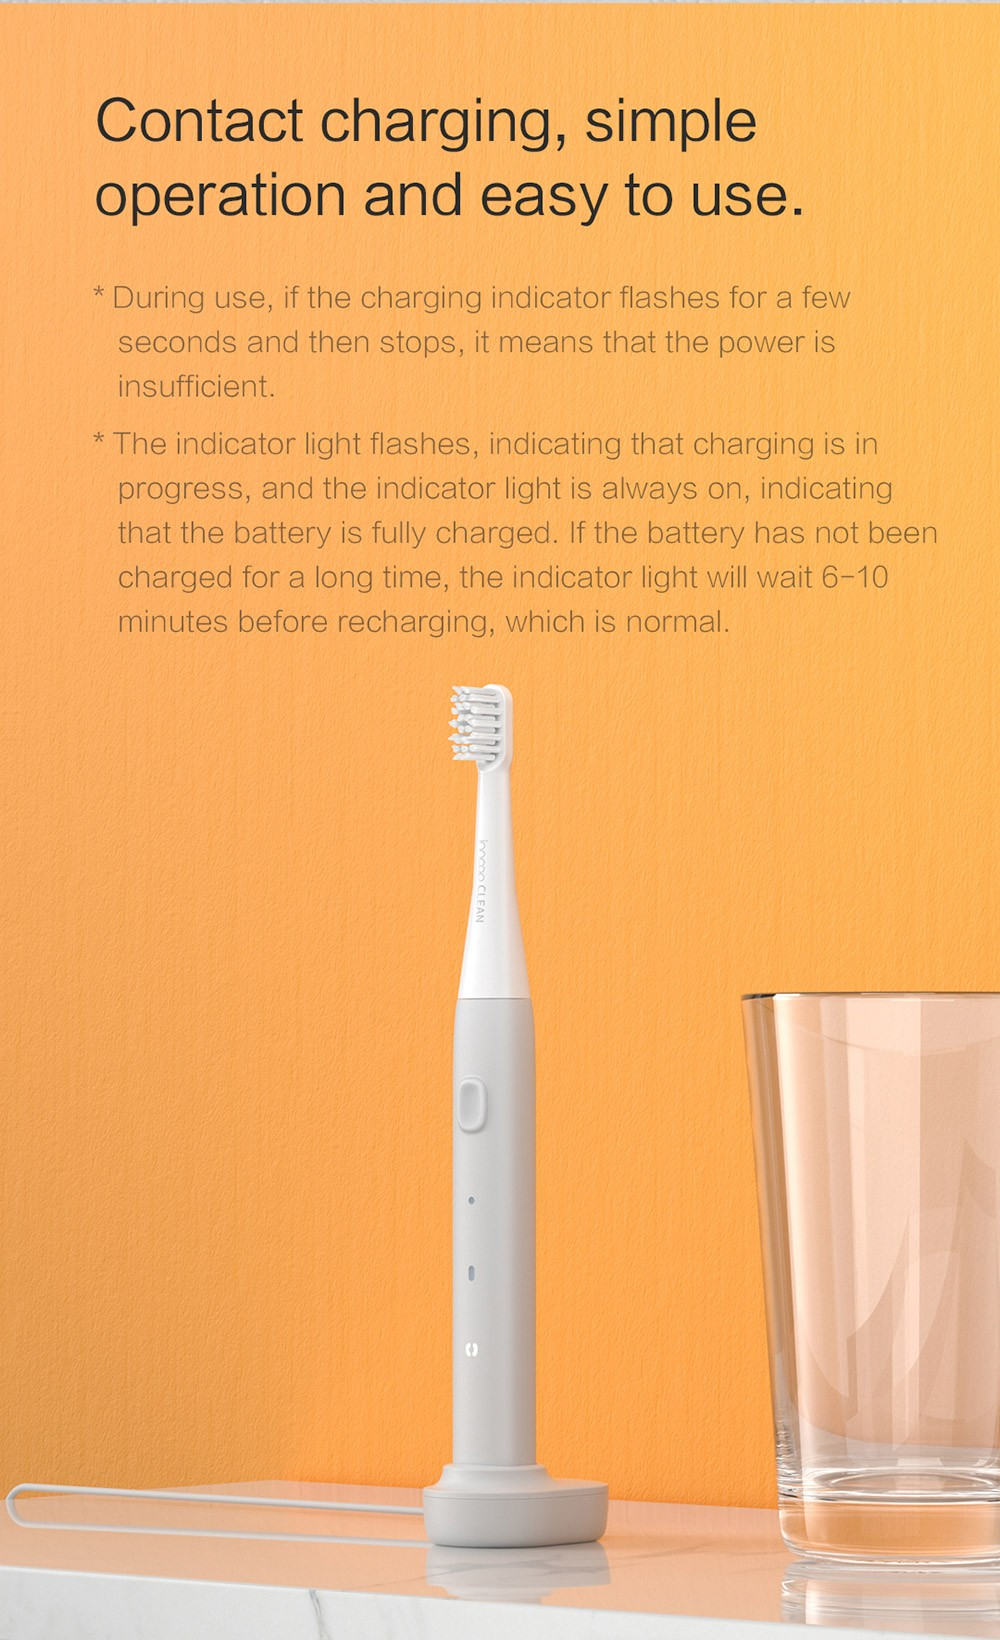 PT01 Electric Toothbrush Contact charging, simple operation and easy to use